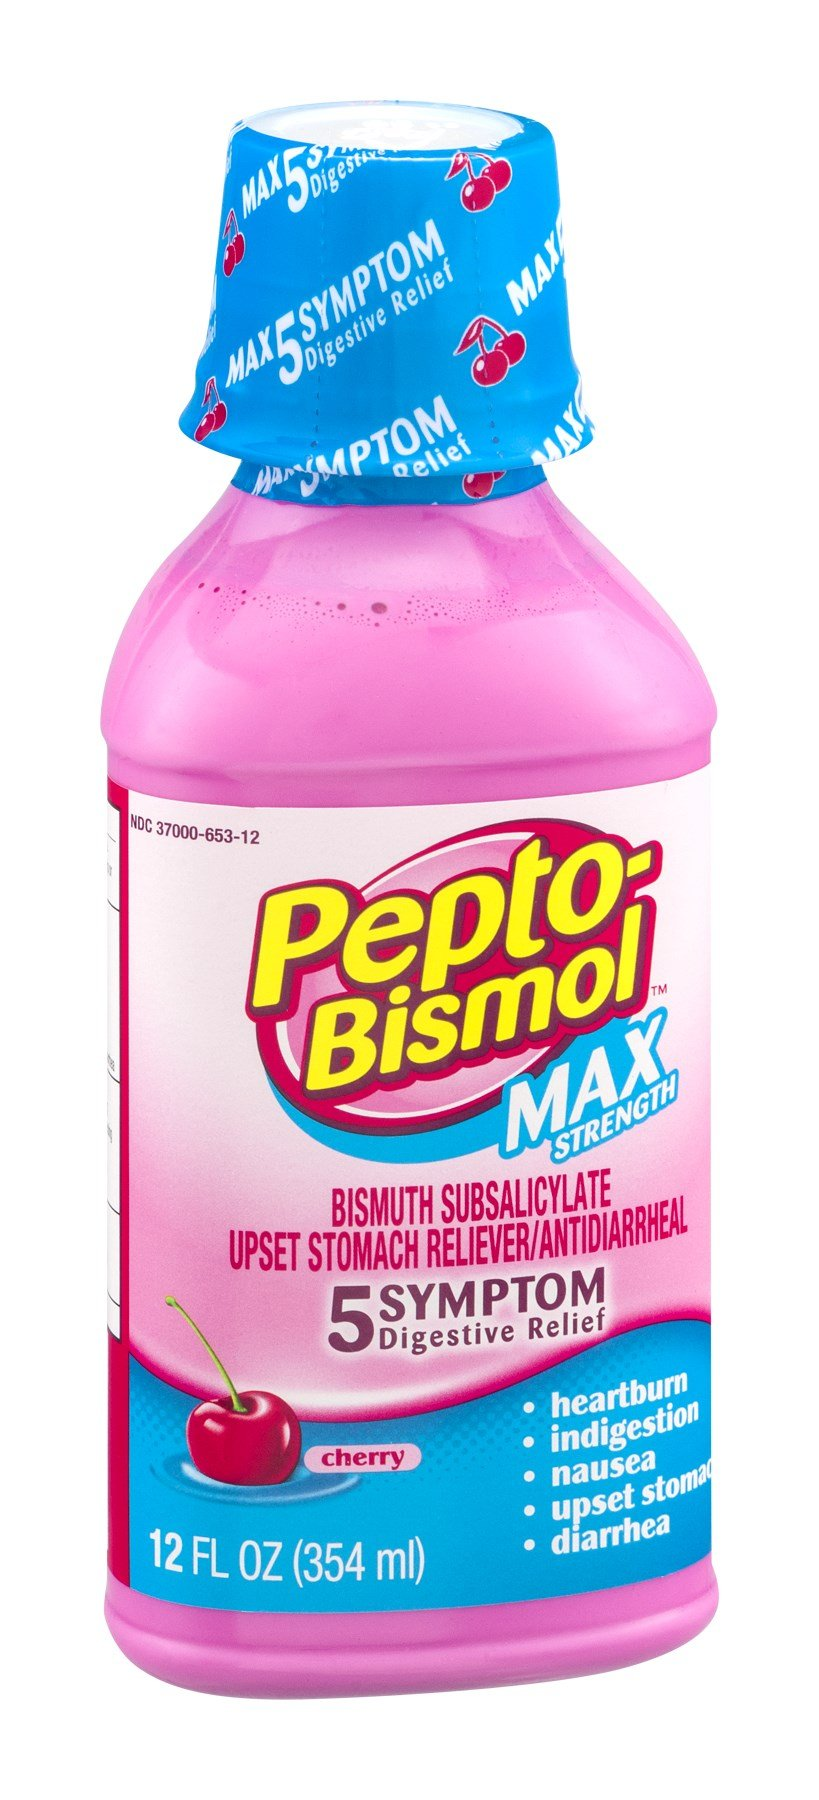 Pepto-Bismol Upset Stomach Reliever 5 Symptom Max Strength Cherry by Pepto Bismol